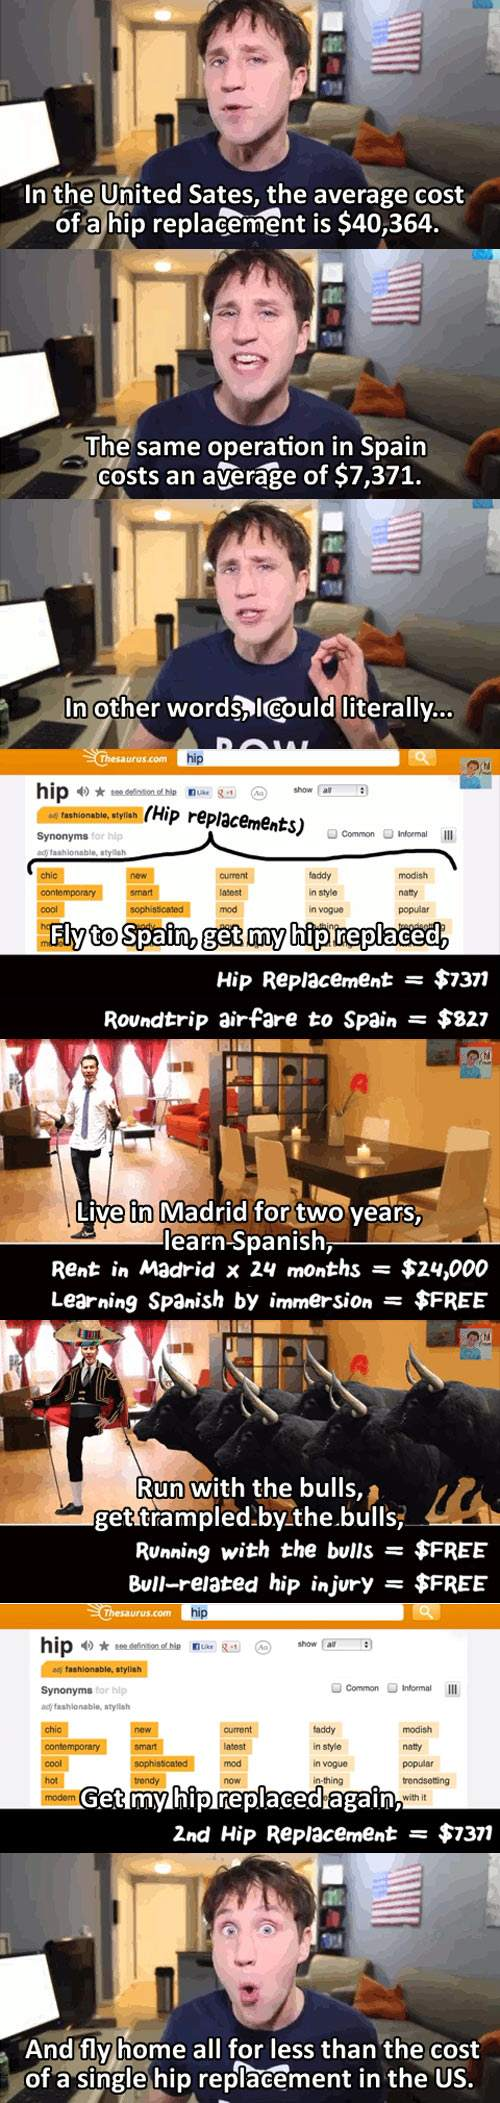 Hip replacement in United States is $40,364